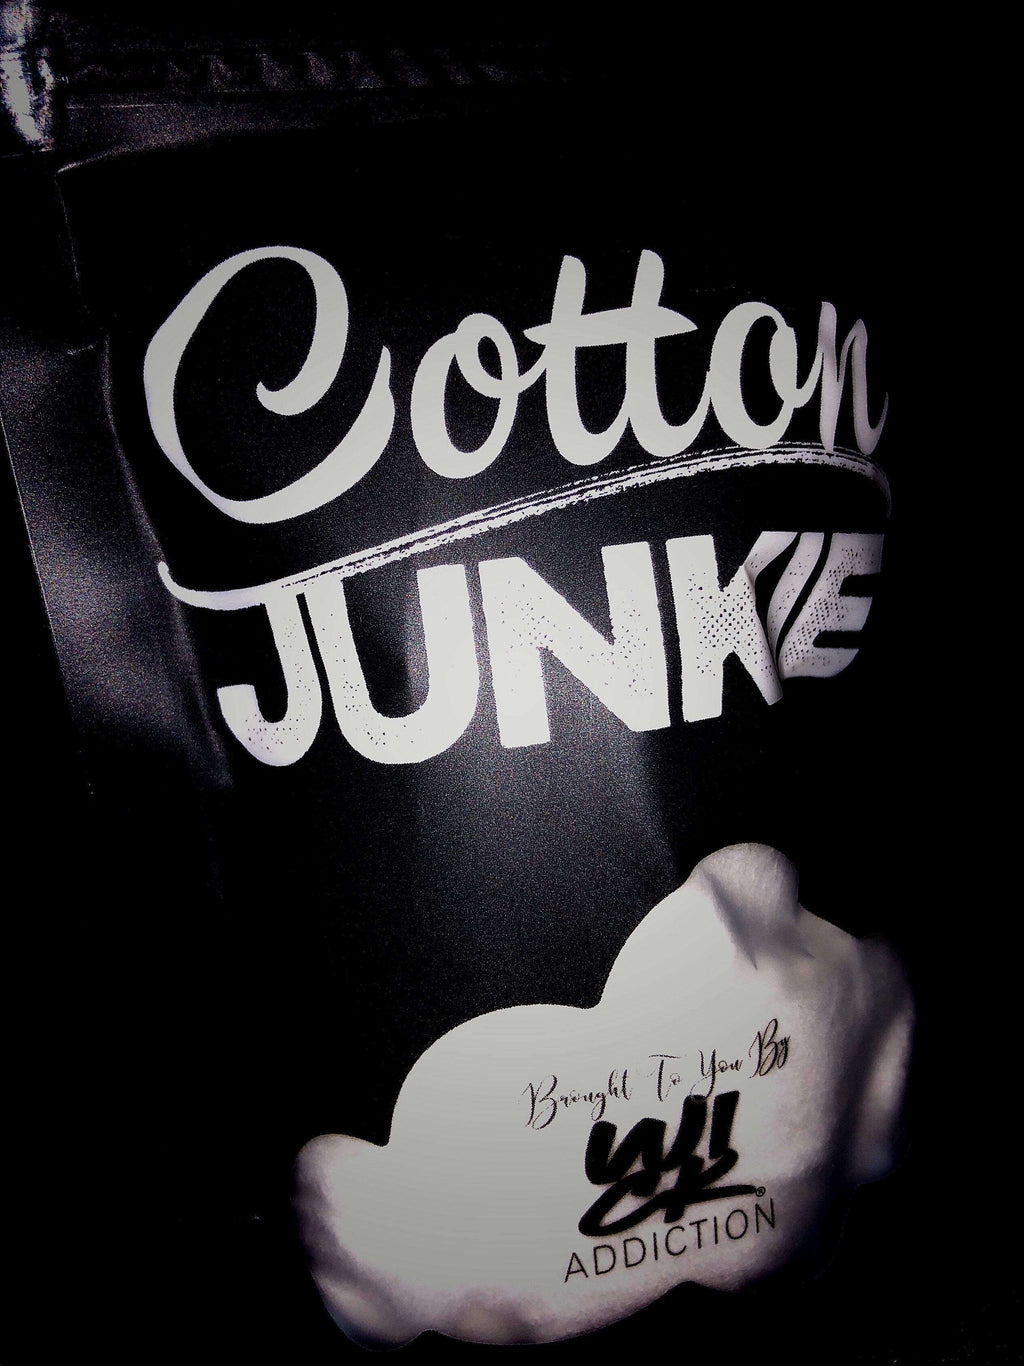 Wick Addiction Cotton Cotton Junkie by Wick Addiction